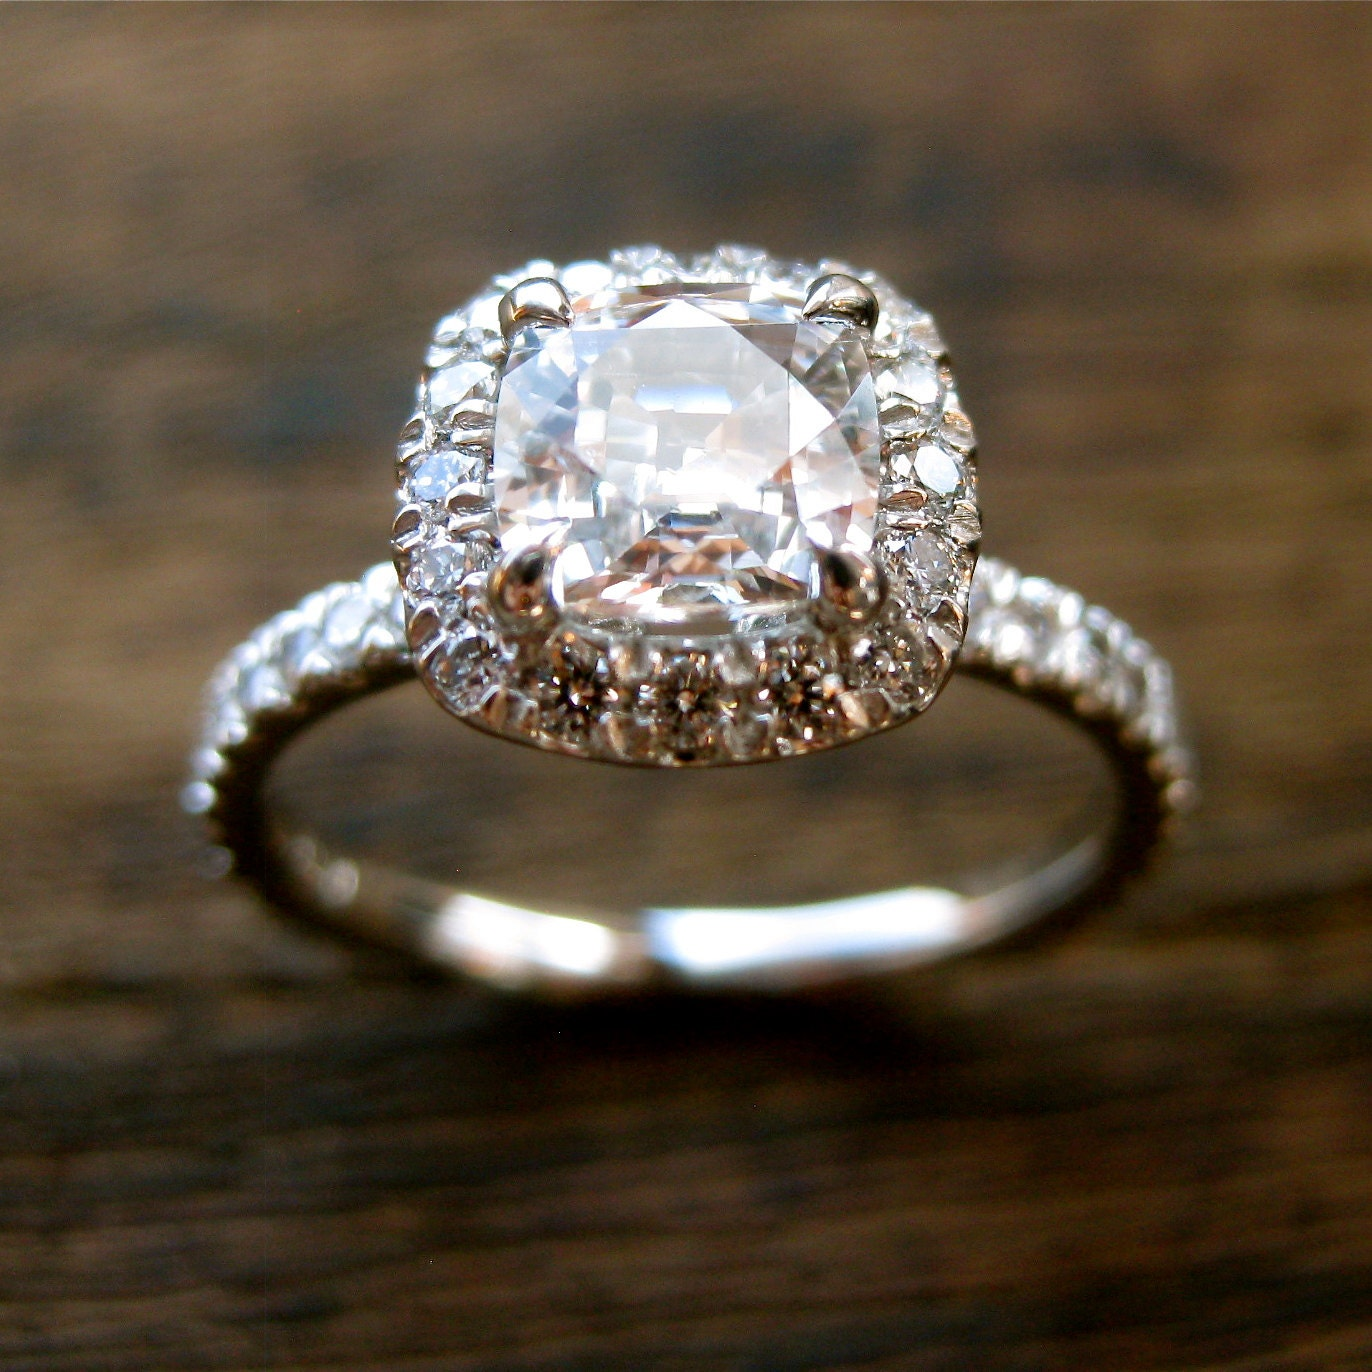 Natural White Sapphire Engagement Ring in Platinum with